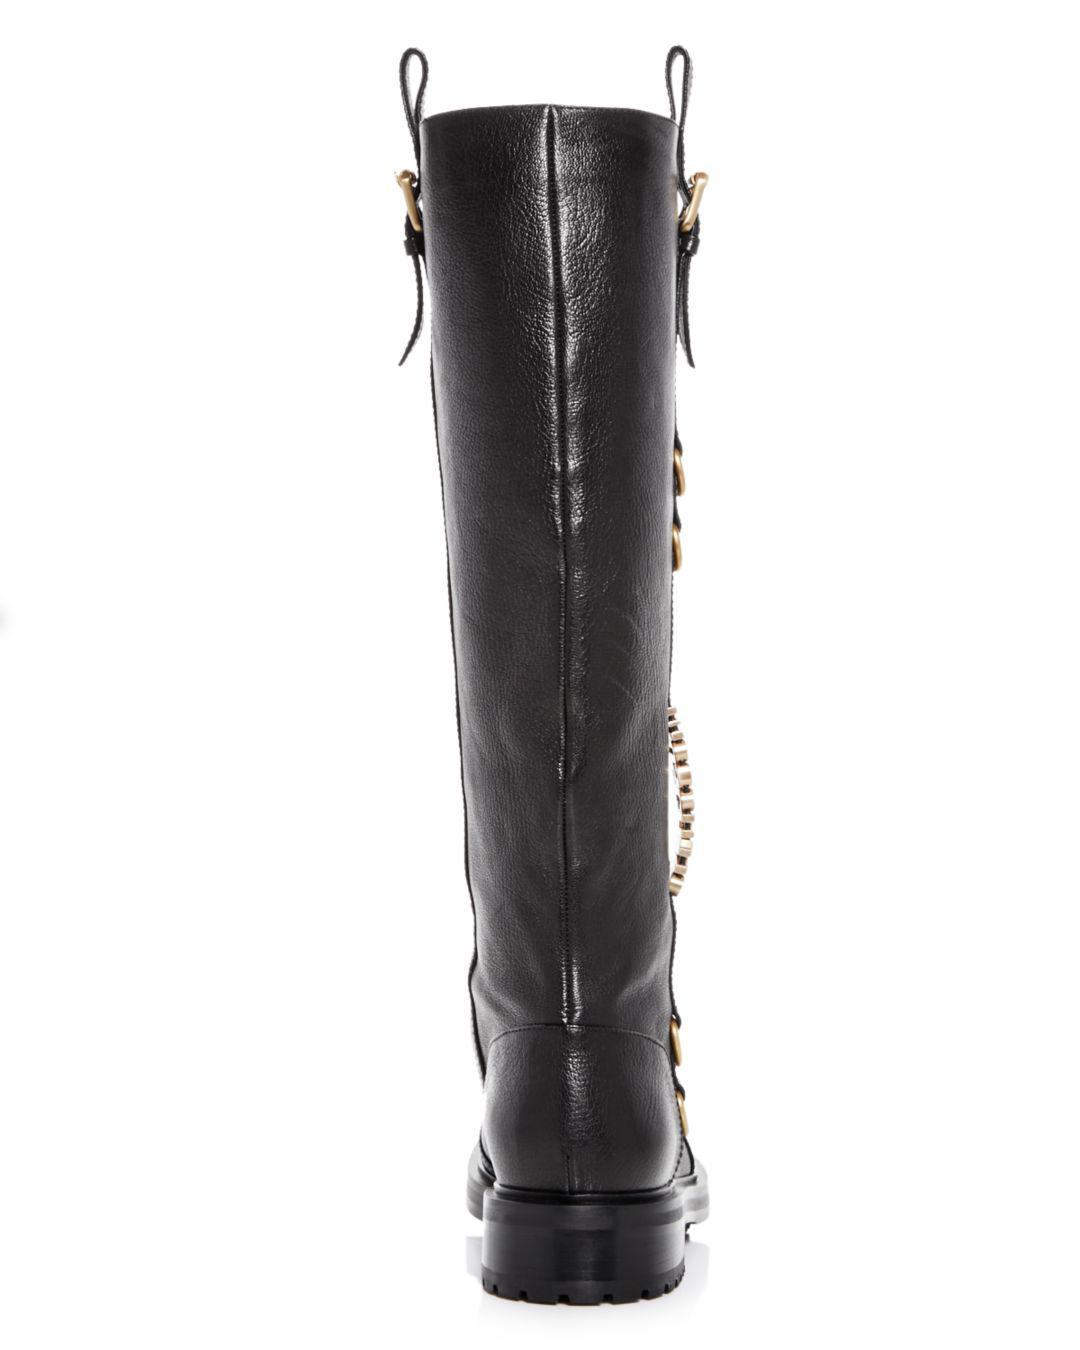 58f974871cf Moschino - Black Women s Logo Leather Riding Boots - Lyst. View fullscreen